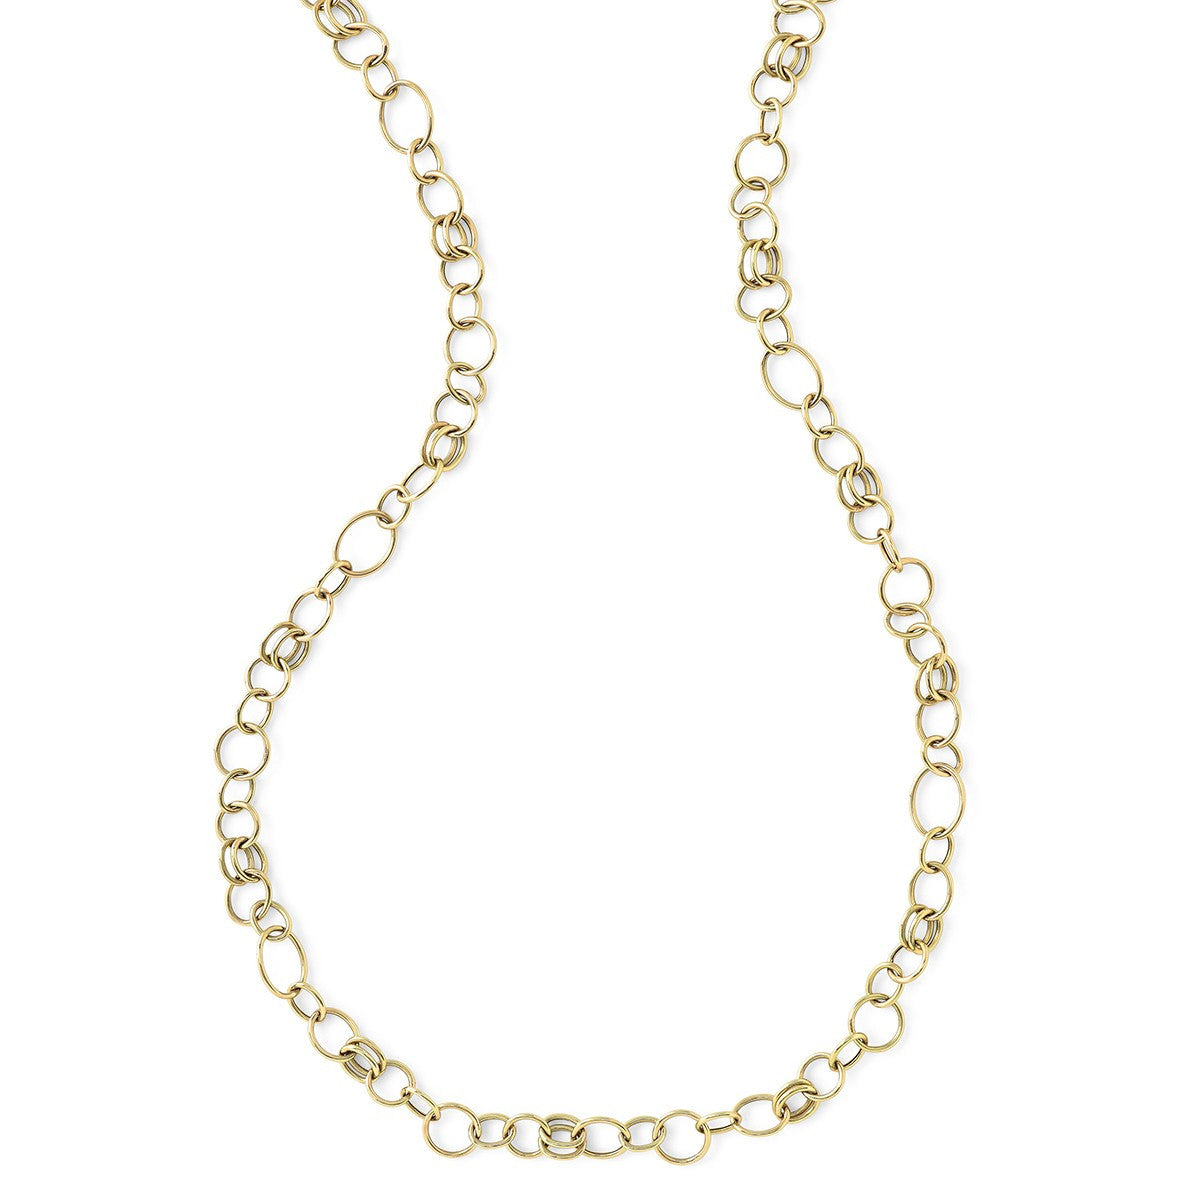 GLAMAZON 18K GOLD CLASSIC LAYER CHAIN NECKLACE 34""